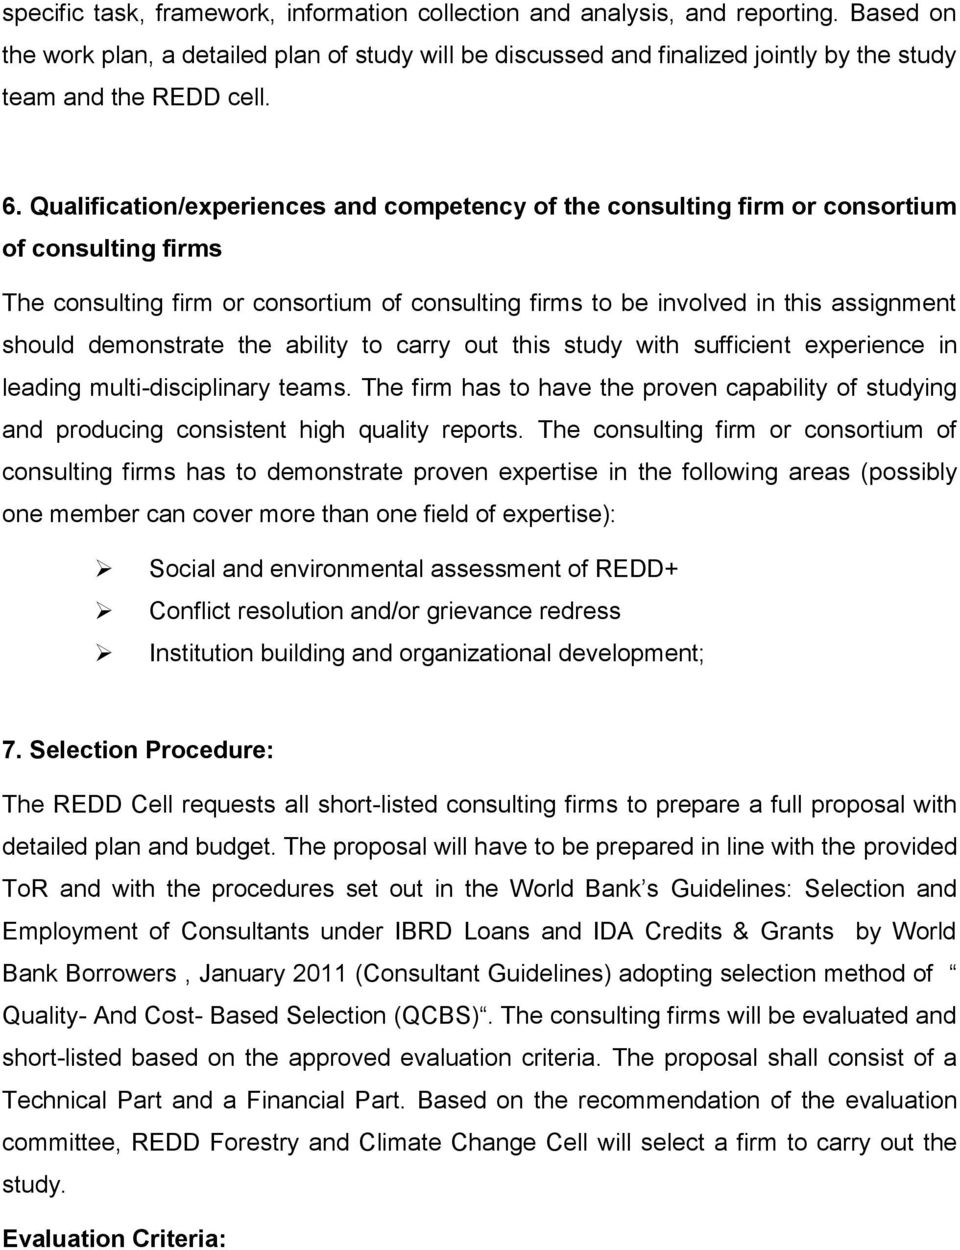 Qualification/experiences and competency of the consulting firm or consortium of consulting firms The consulting firm or consortium of consulting firms to be involved in this assignment should